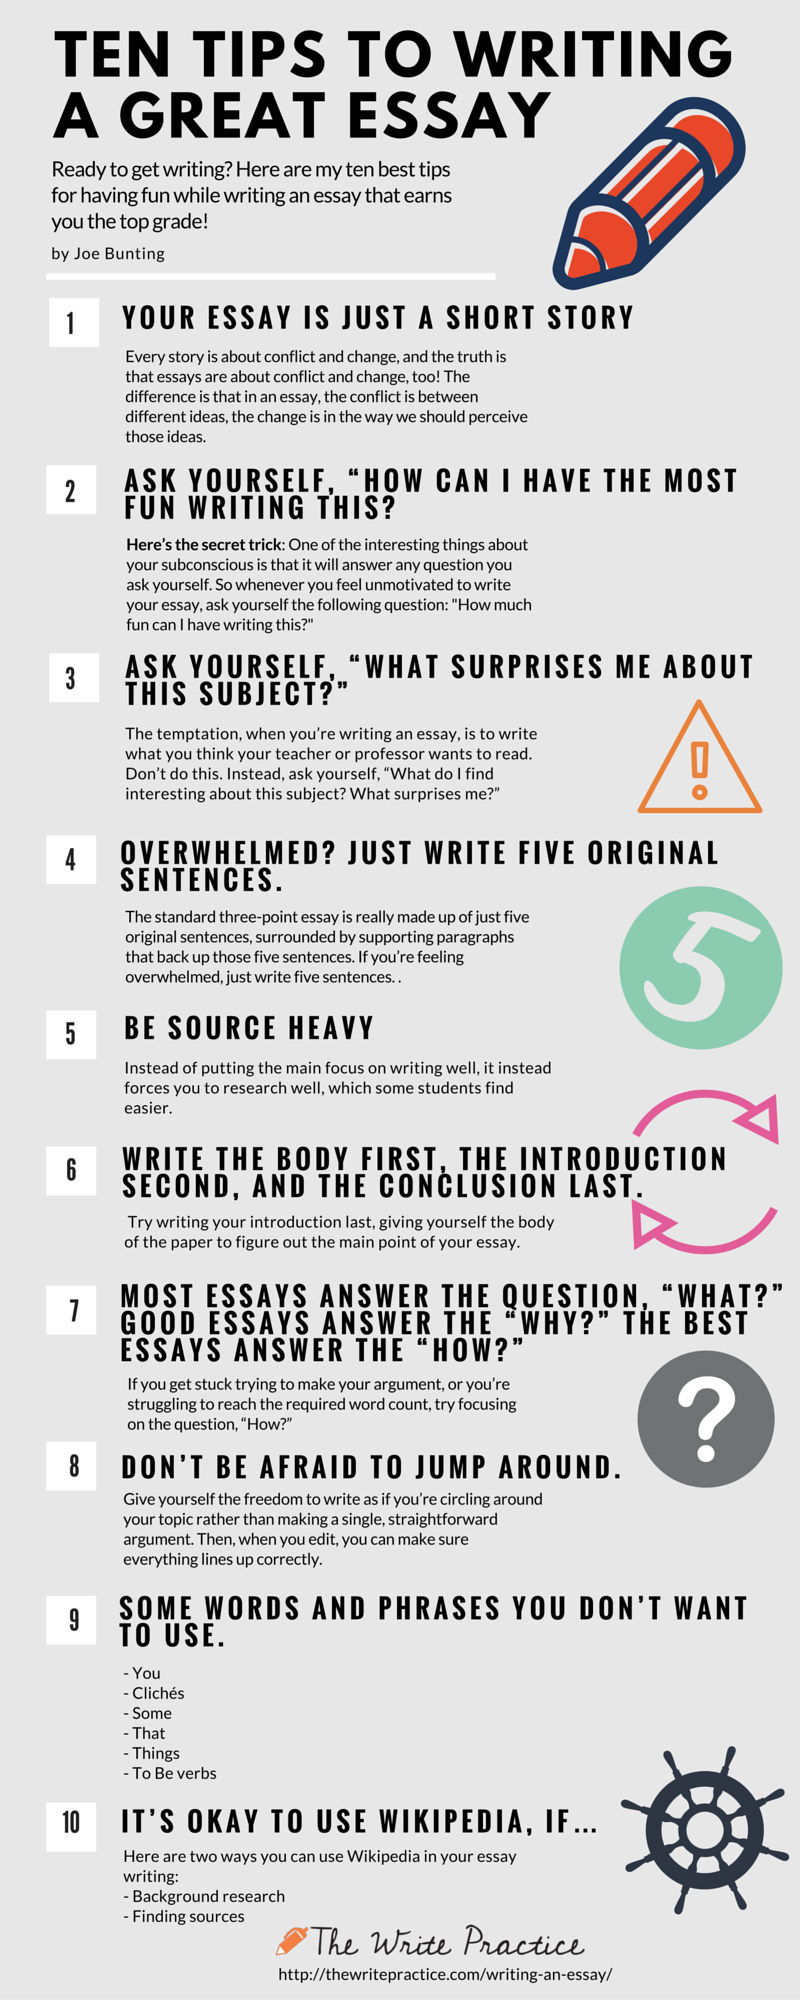 001 Tips For Writing An Essay1 Essay Example How To Shocking Write About Myself A Scholarship Excellent Conclusion Pdf Full